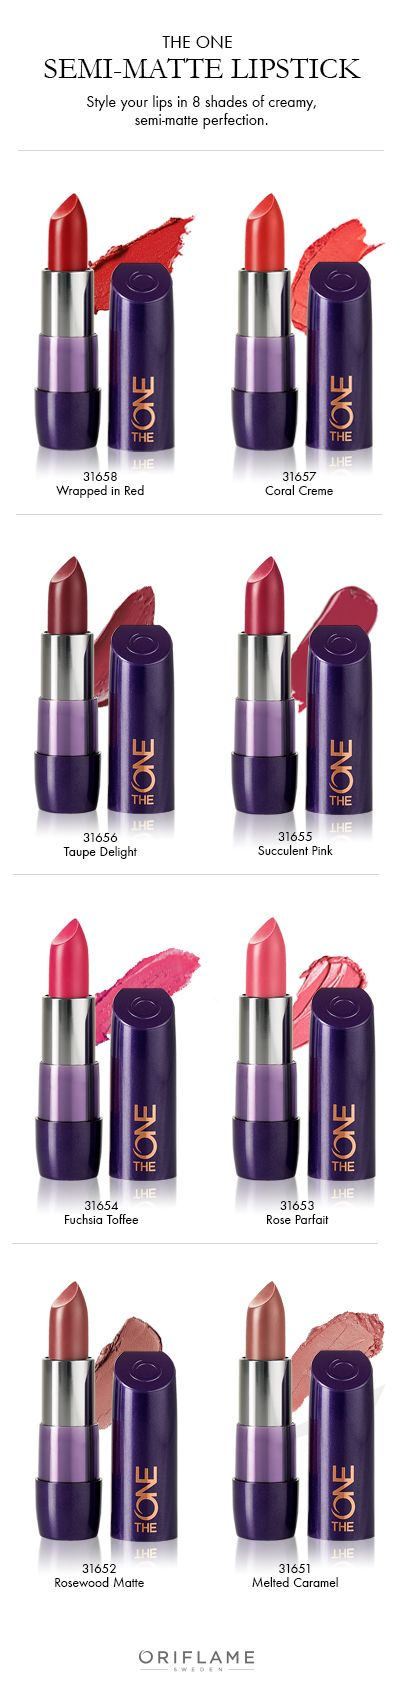 Discover 8 gorgeous shades of The ONE 5-in-1 Colour Stylist Cream Lipstick. Για αγορές εδώ http://gr.oriflame.com/recruits/online-registration.jhtml?sponsor=361593&_requestid=378352